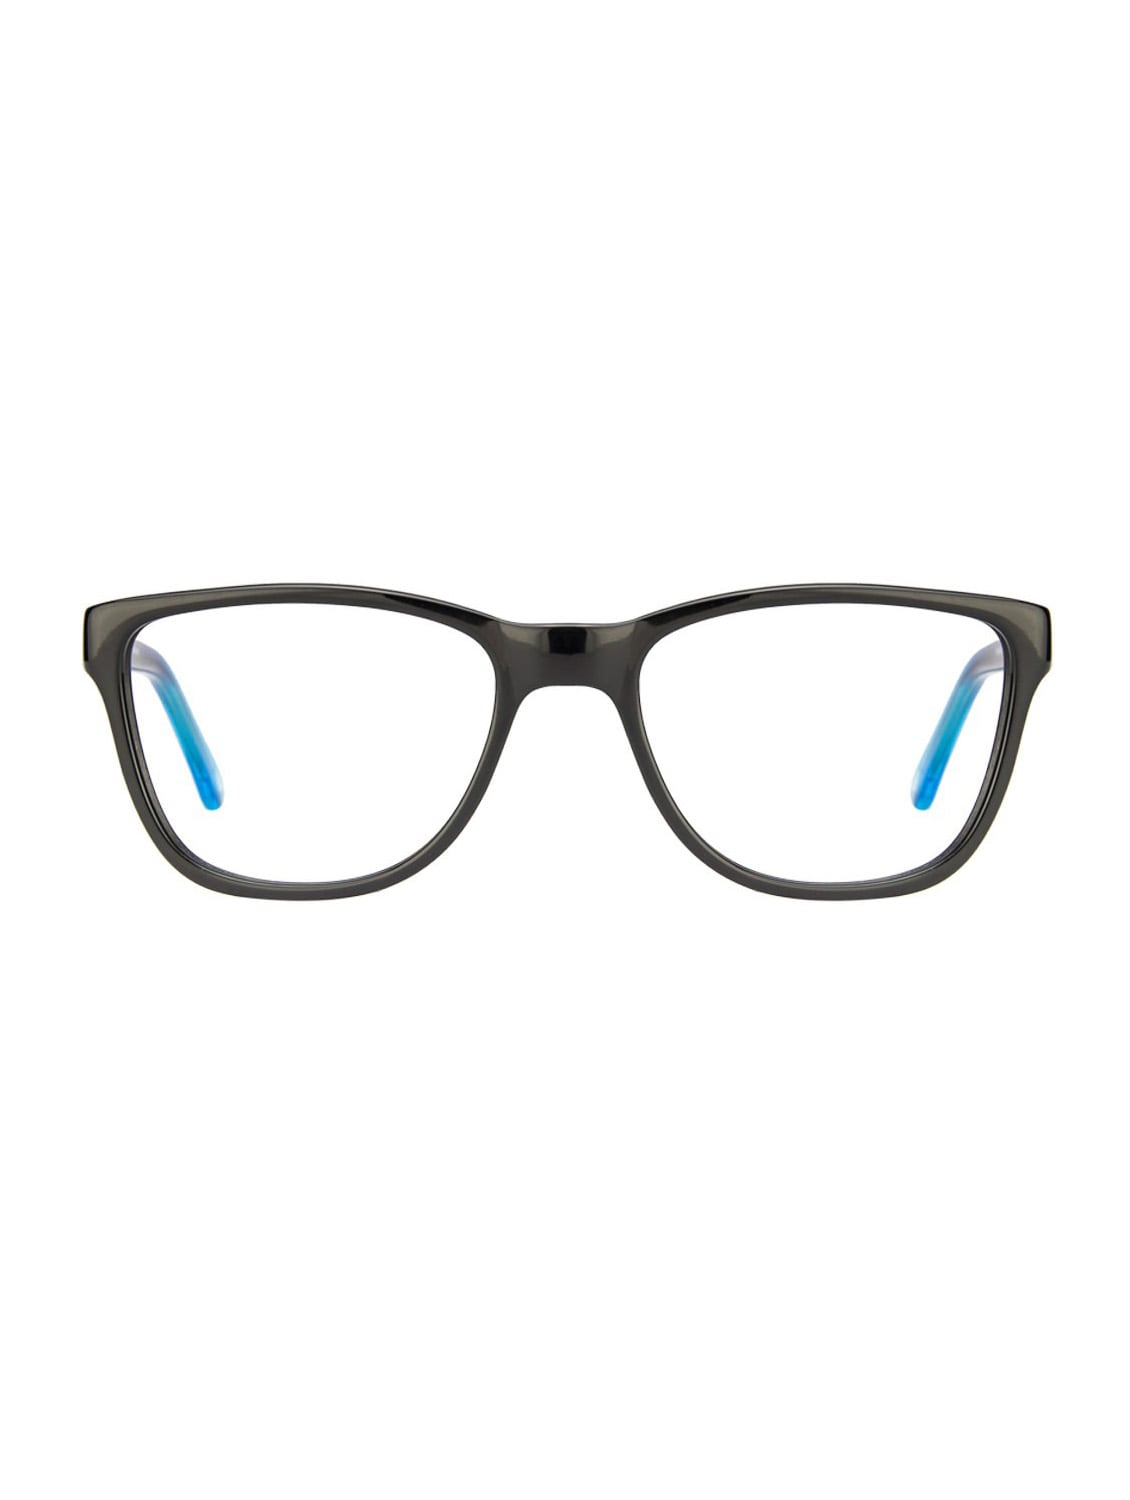 Vincent Chase Premium Vagabond VC 4012 Black Blue Transparent C1 Wayfarer Eyeglasses - By